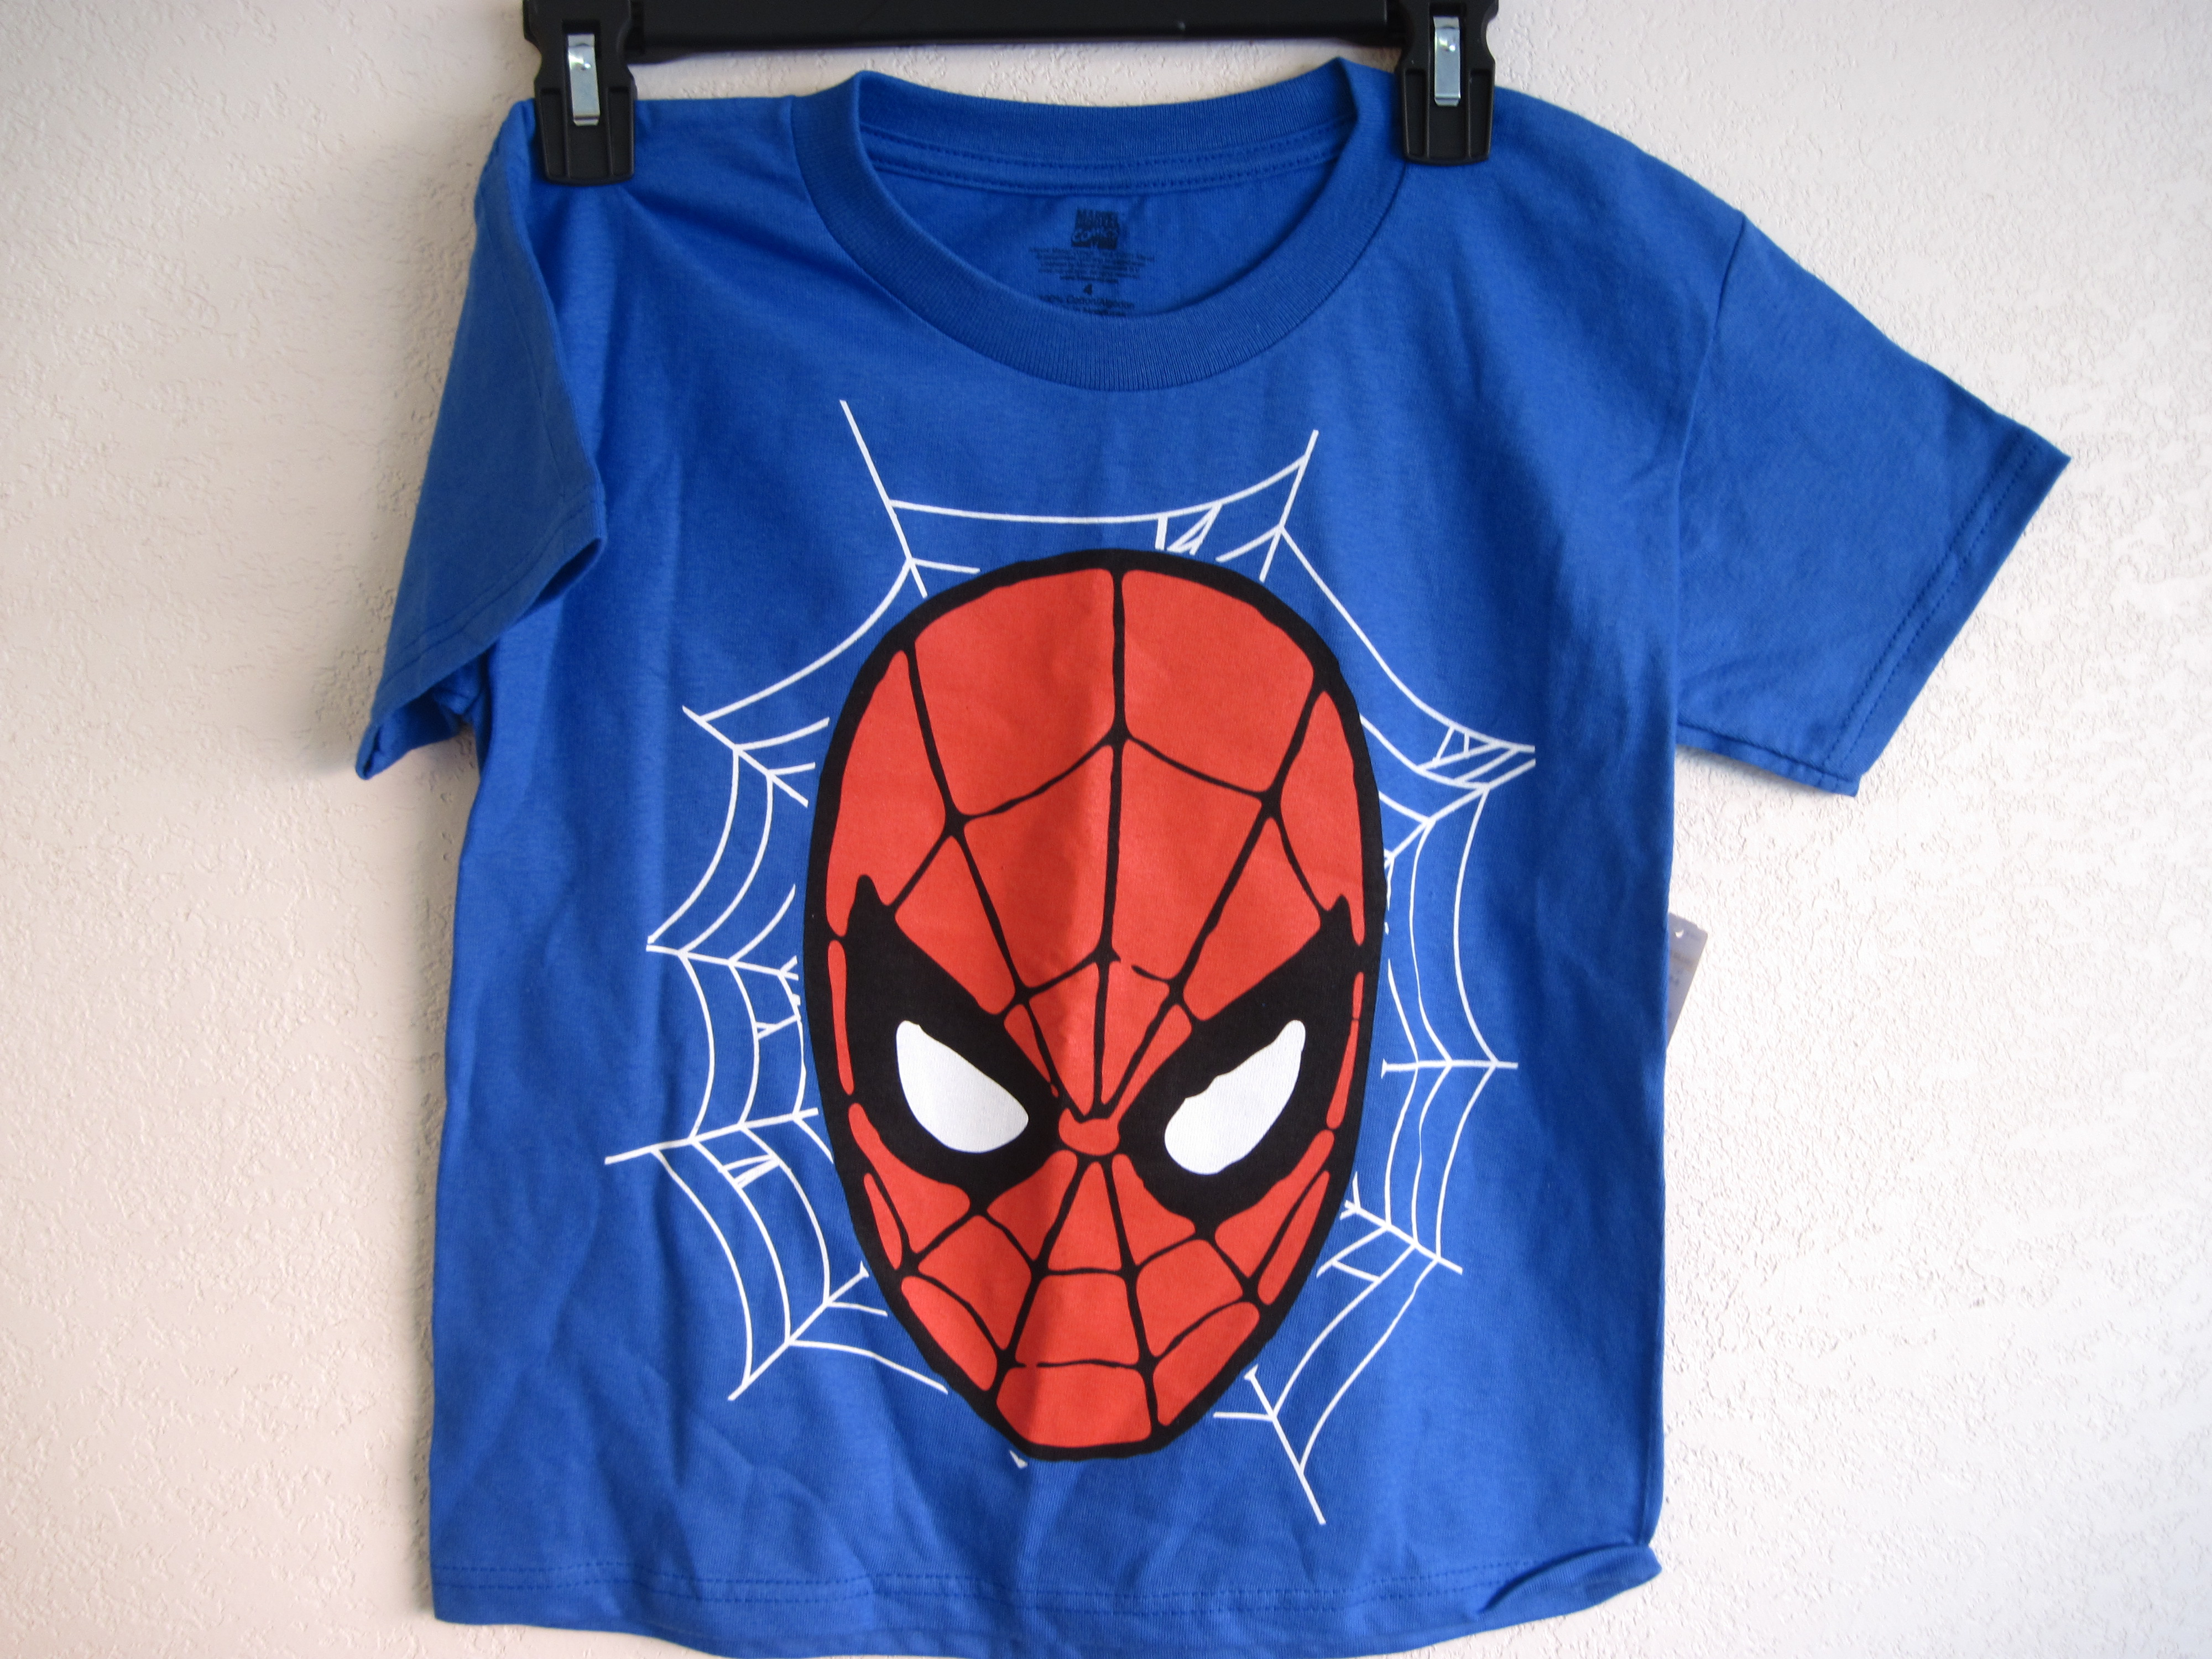 Marvel Comics Sz 4 Spiderman T-Shirt (blue)